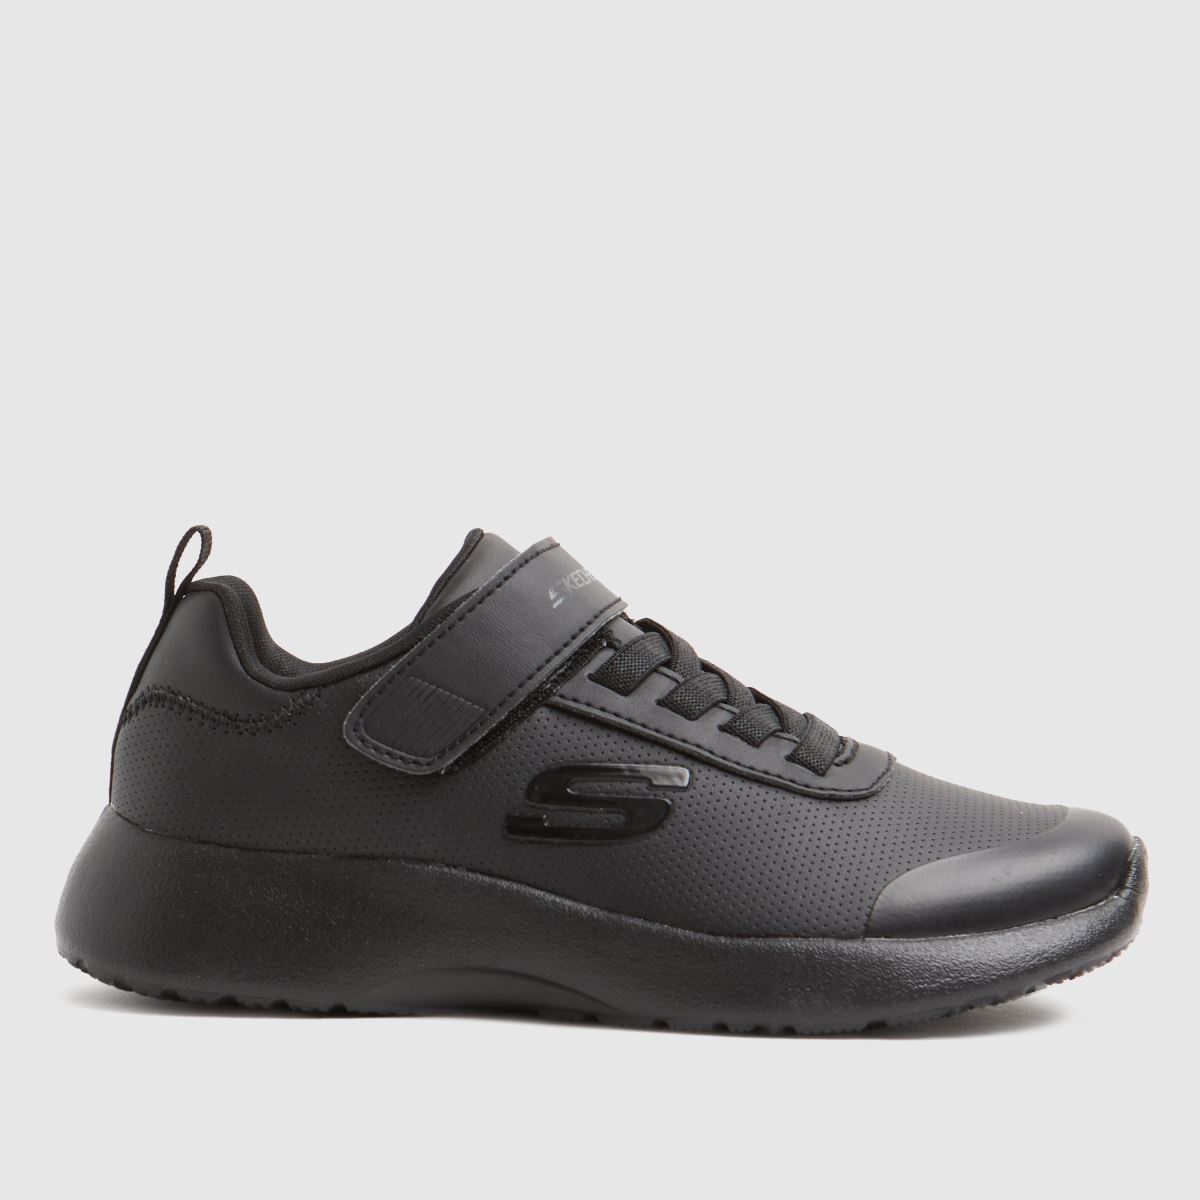 SKECHERS Black Dynamight D.s Trainers Junior